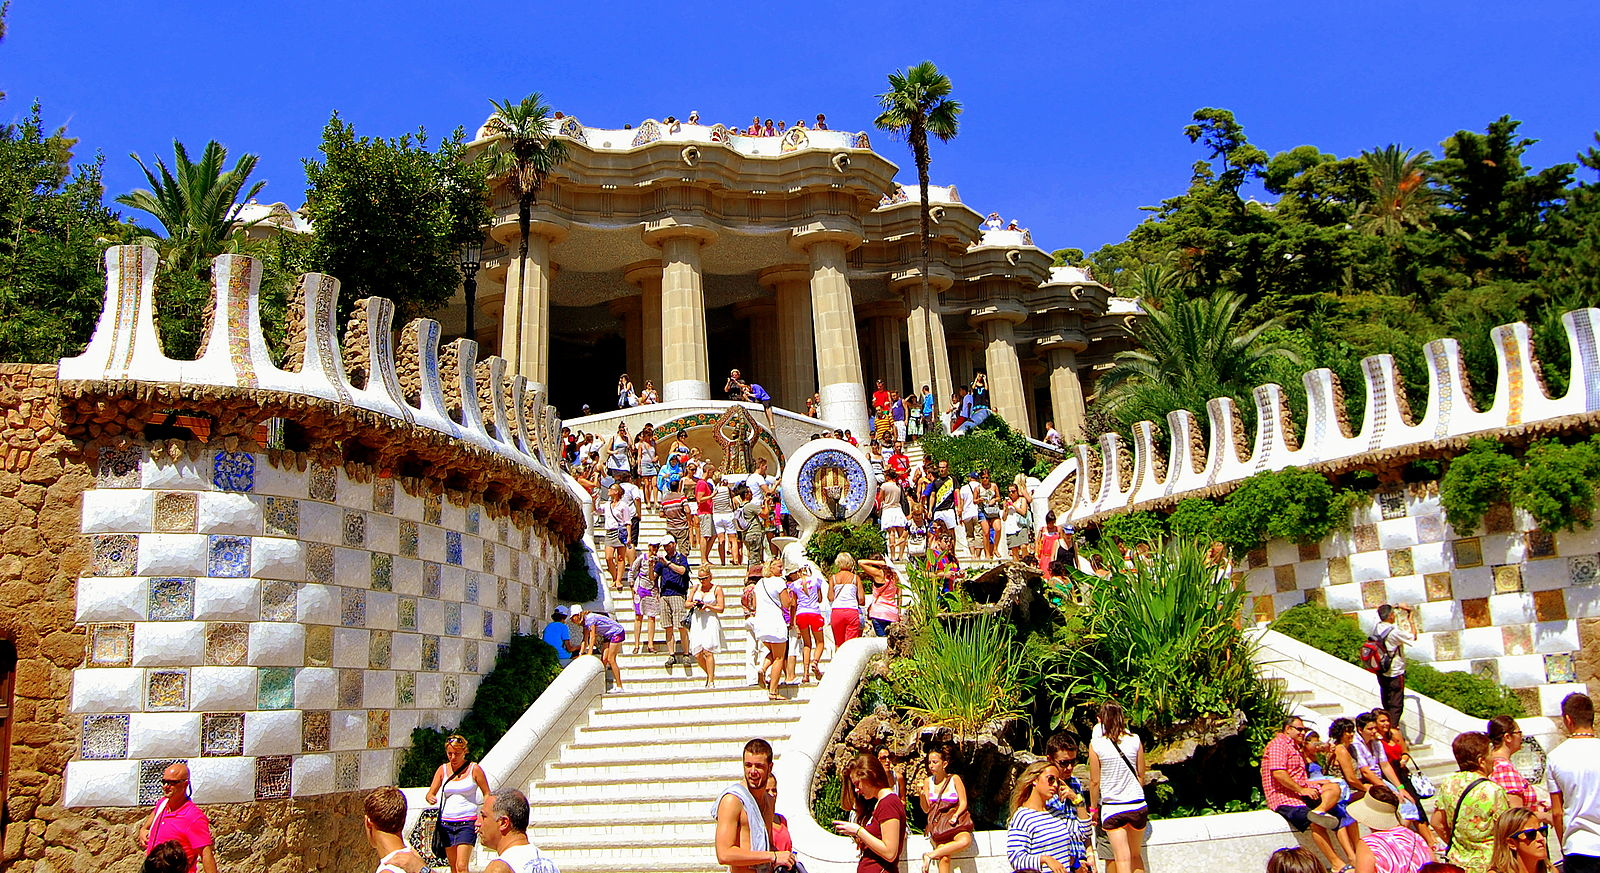 A visit to Park Guell is one of the best things to do in Barcelona